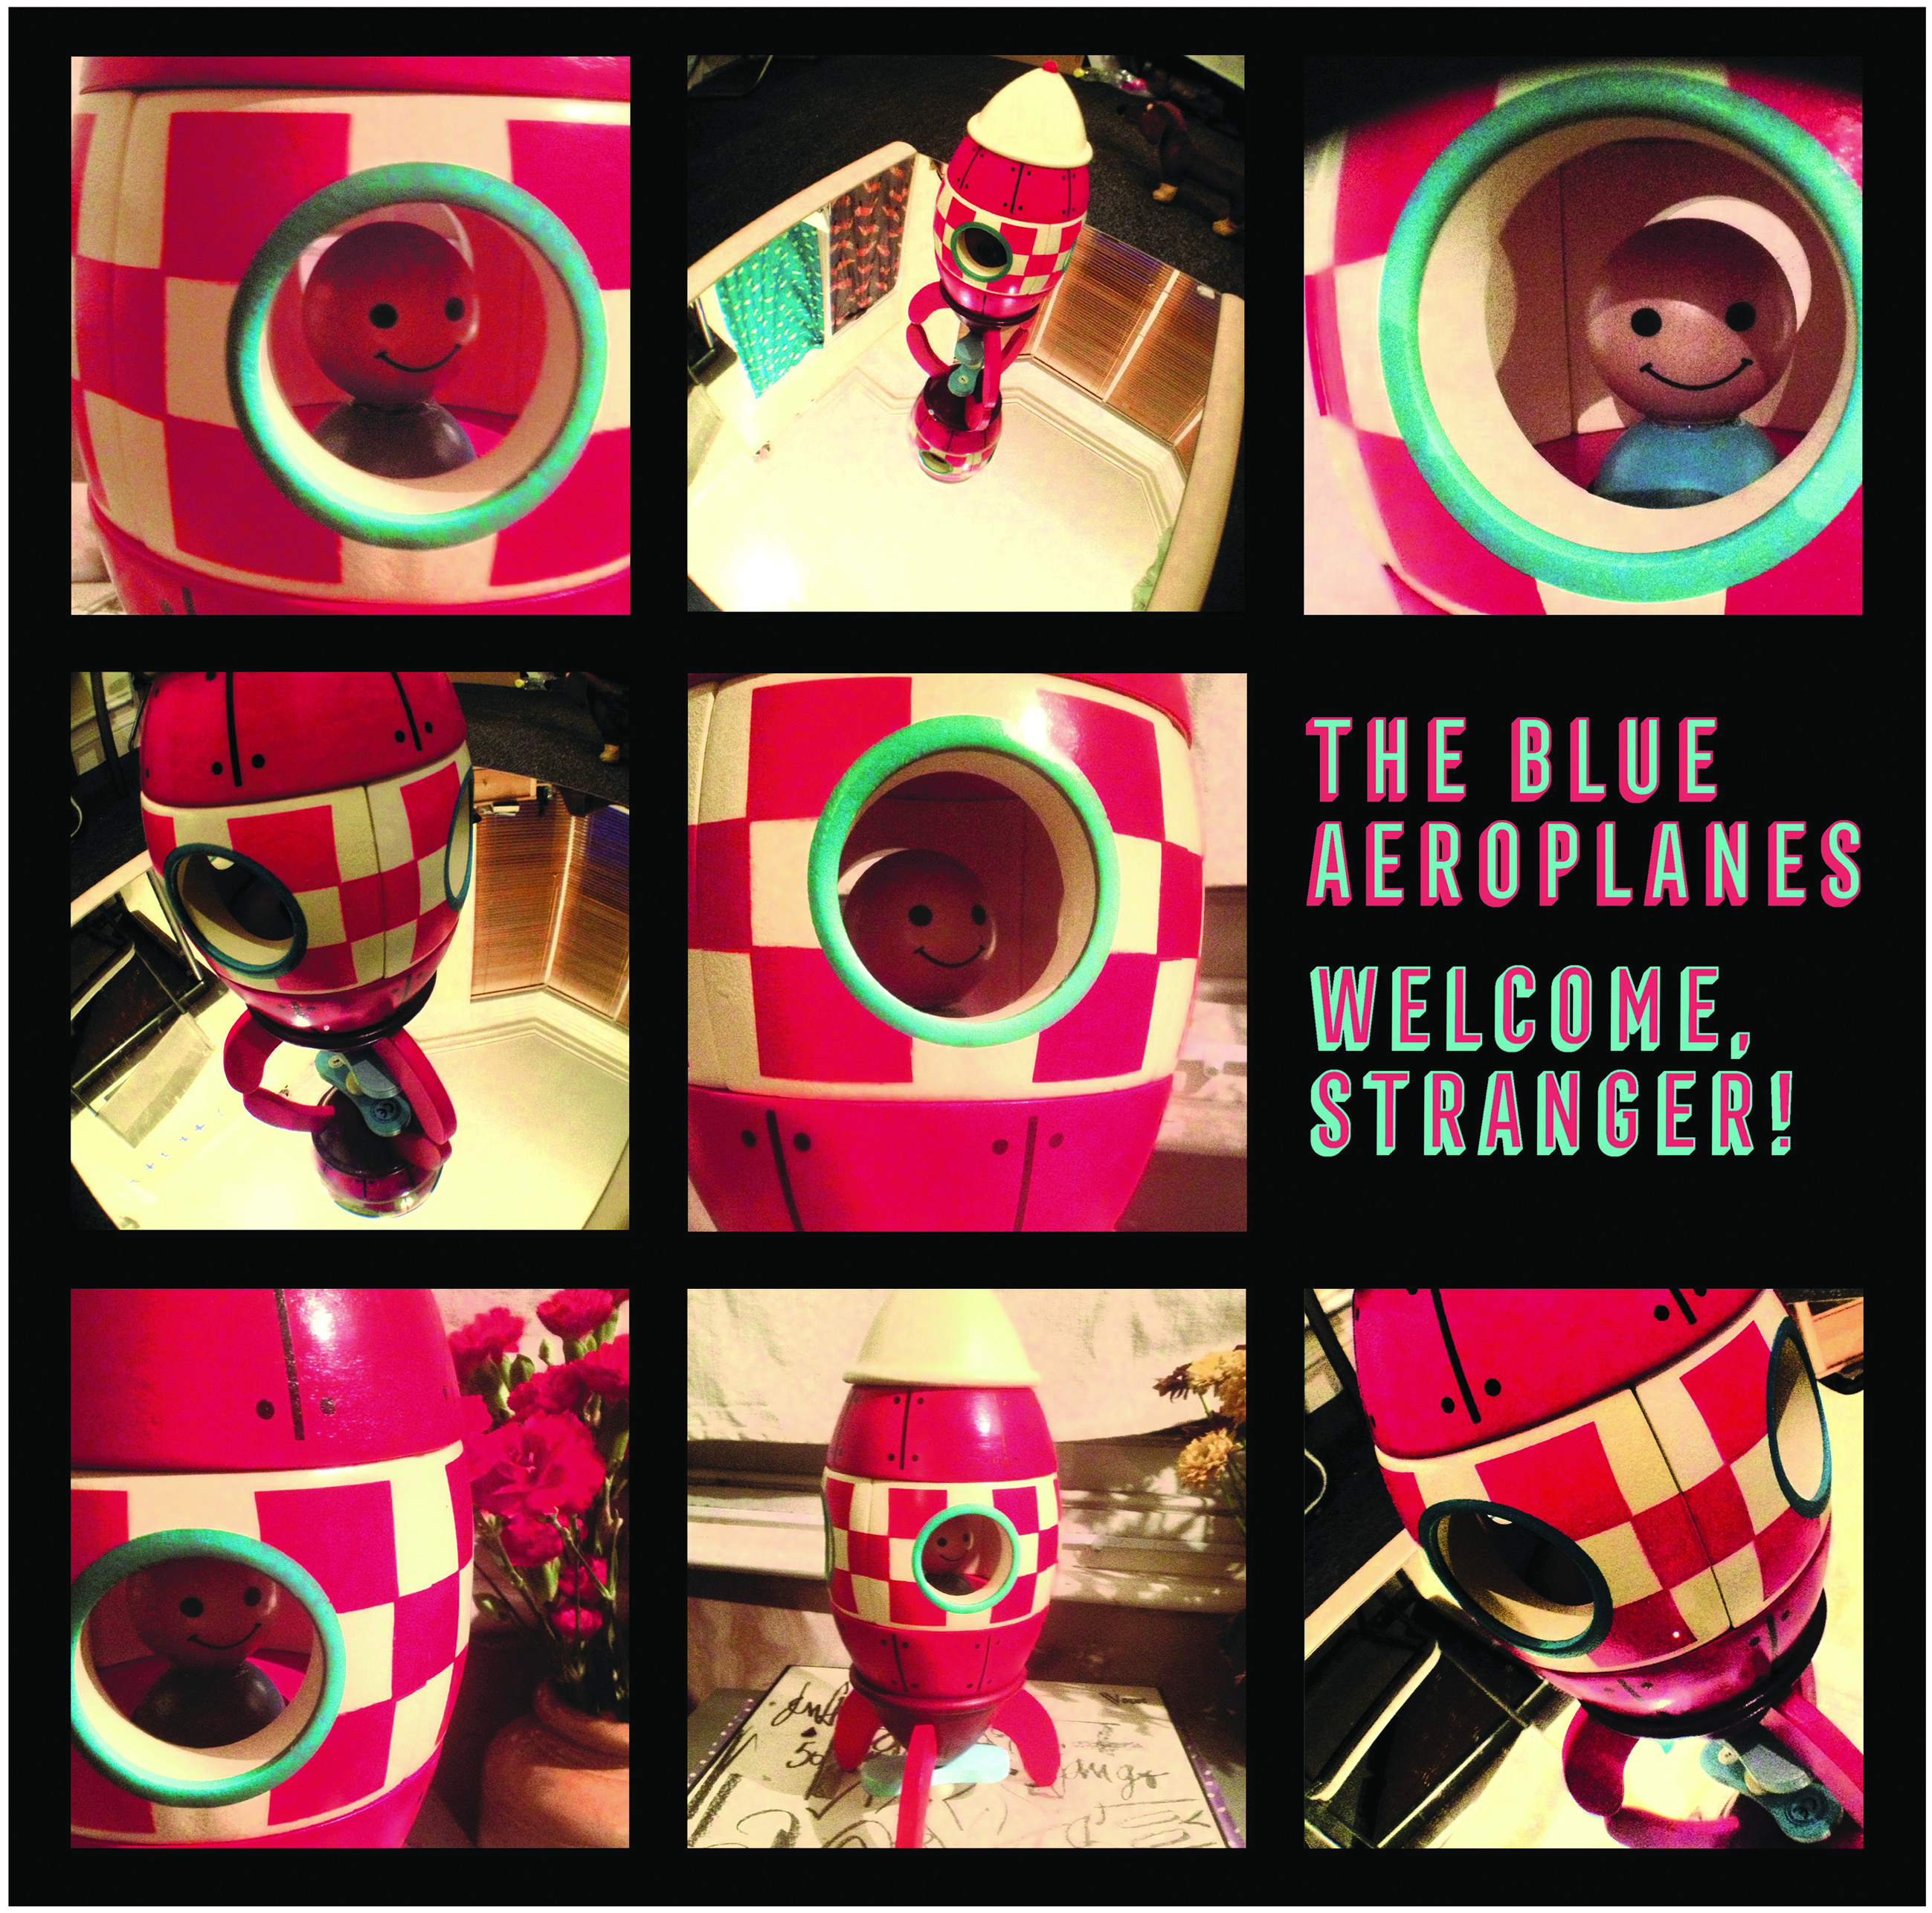 Welcome, Stranger!